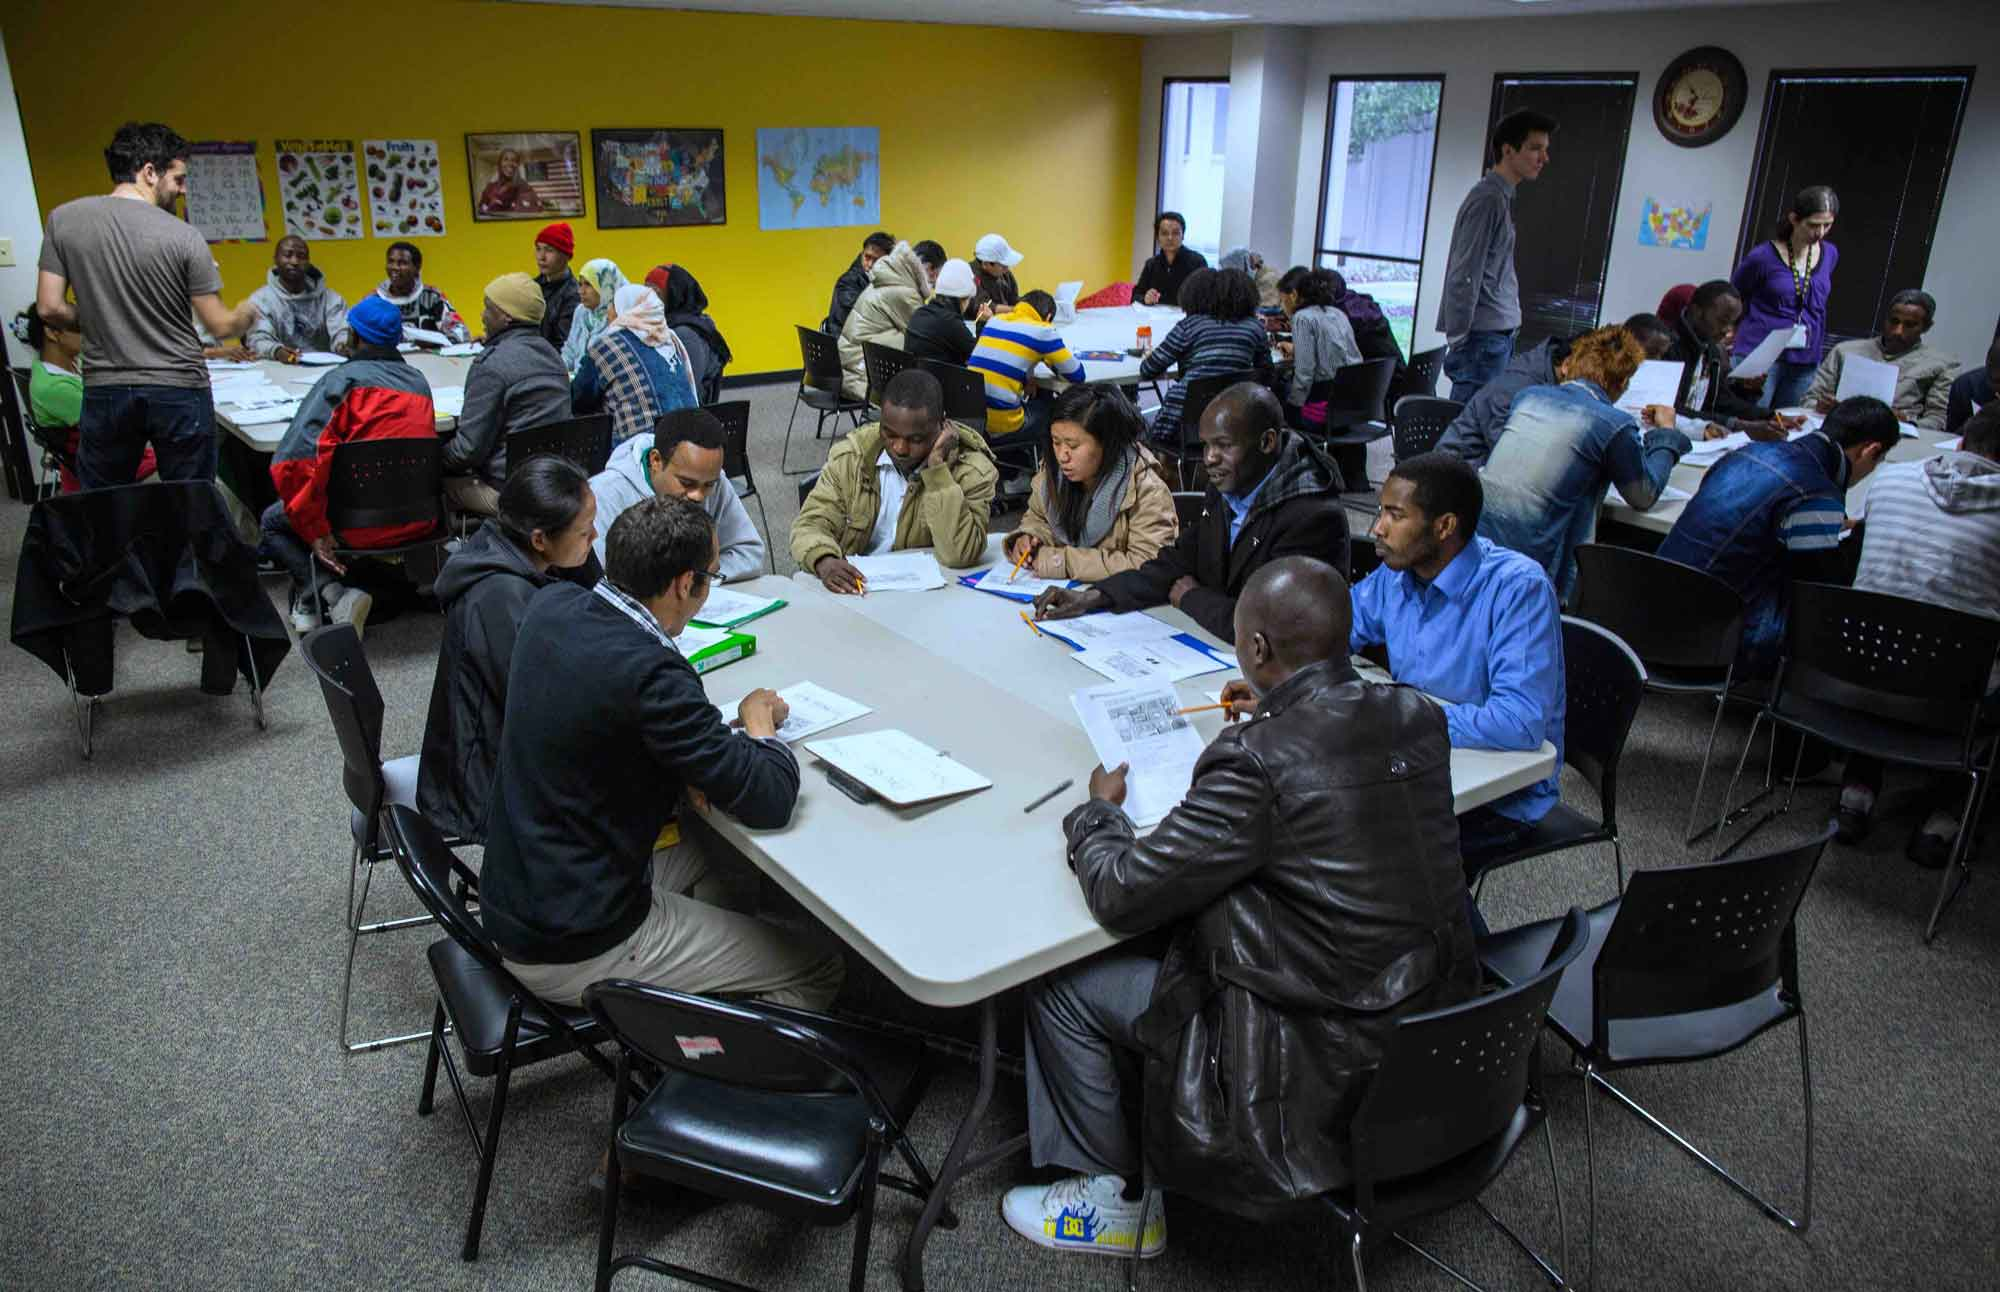 Resettled refugees learning English during a cultural orientation class